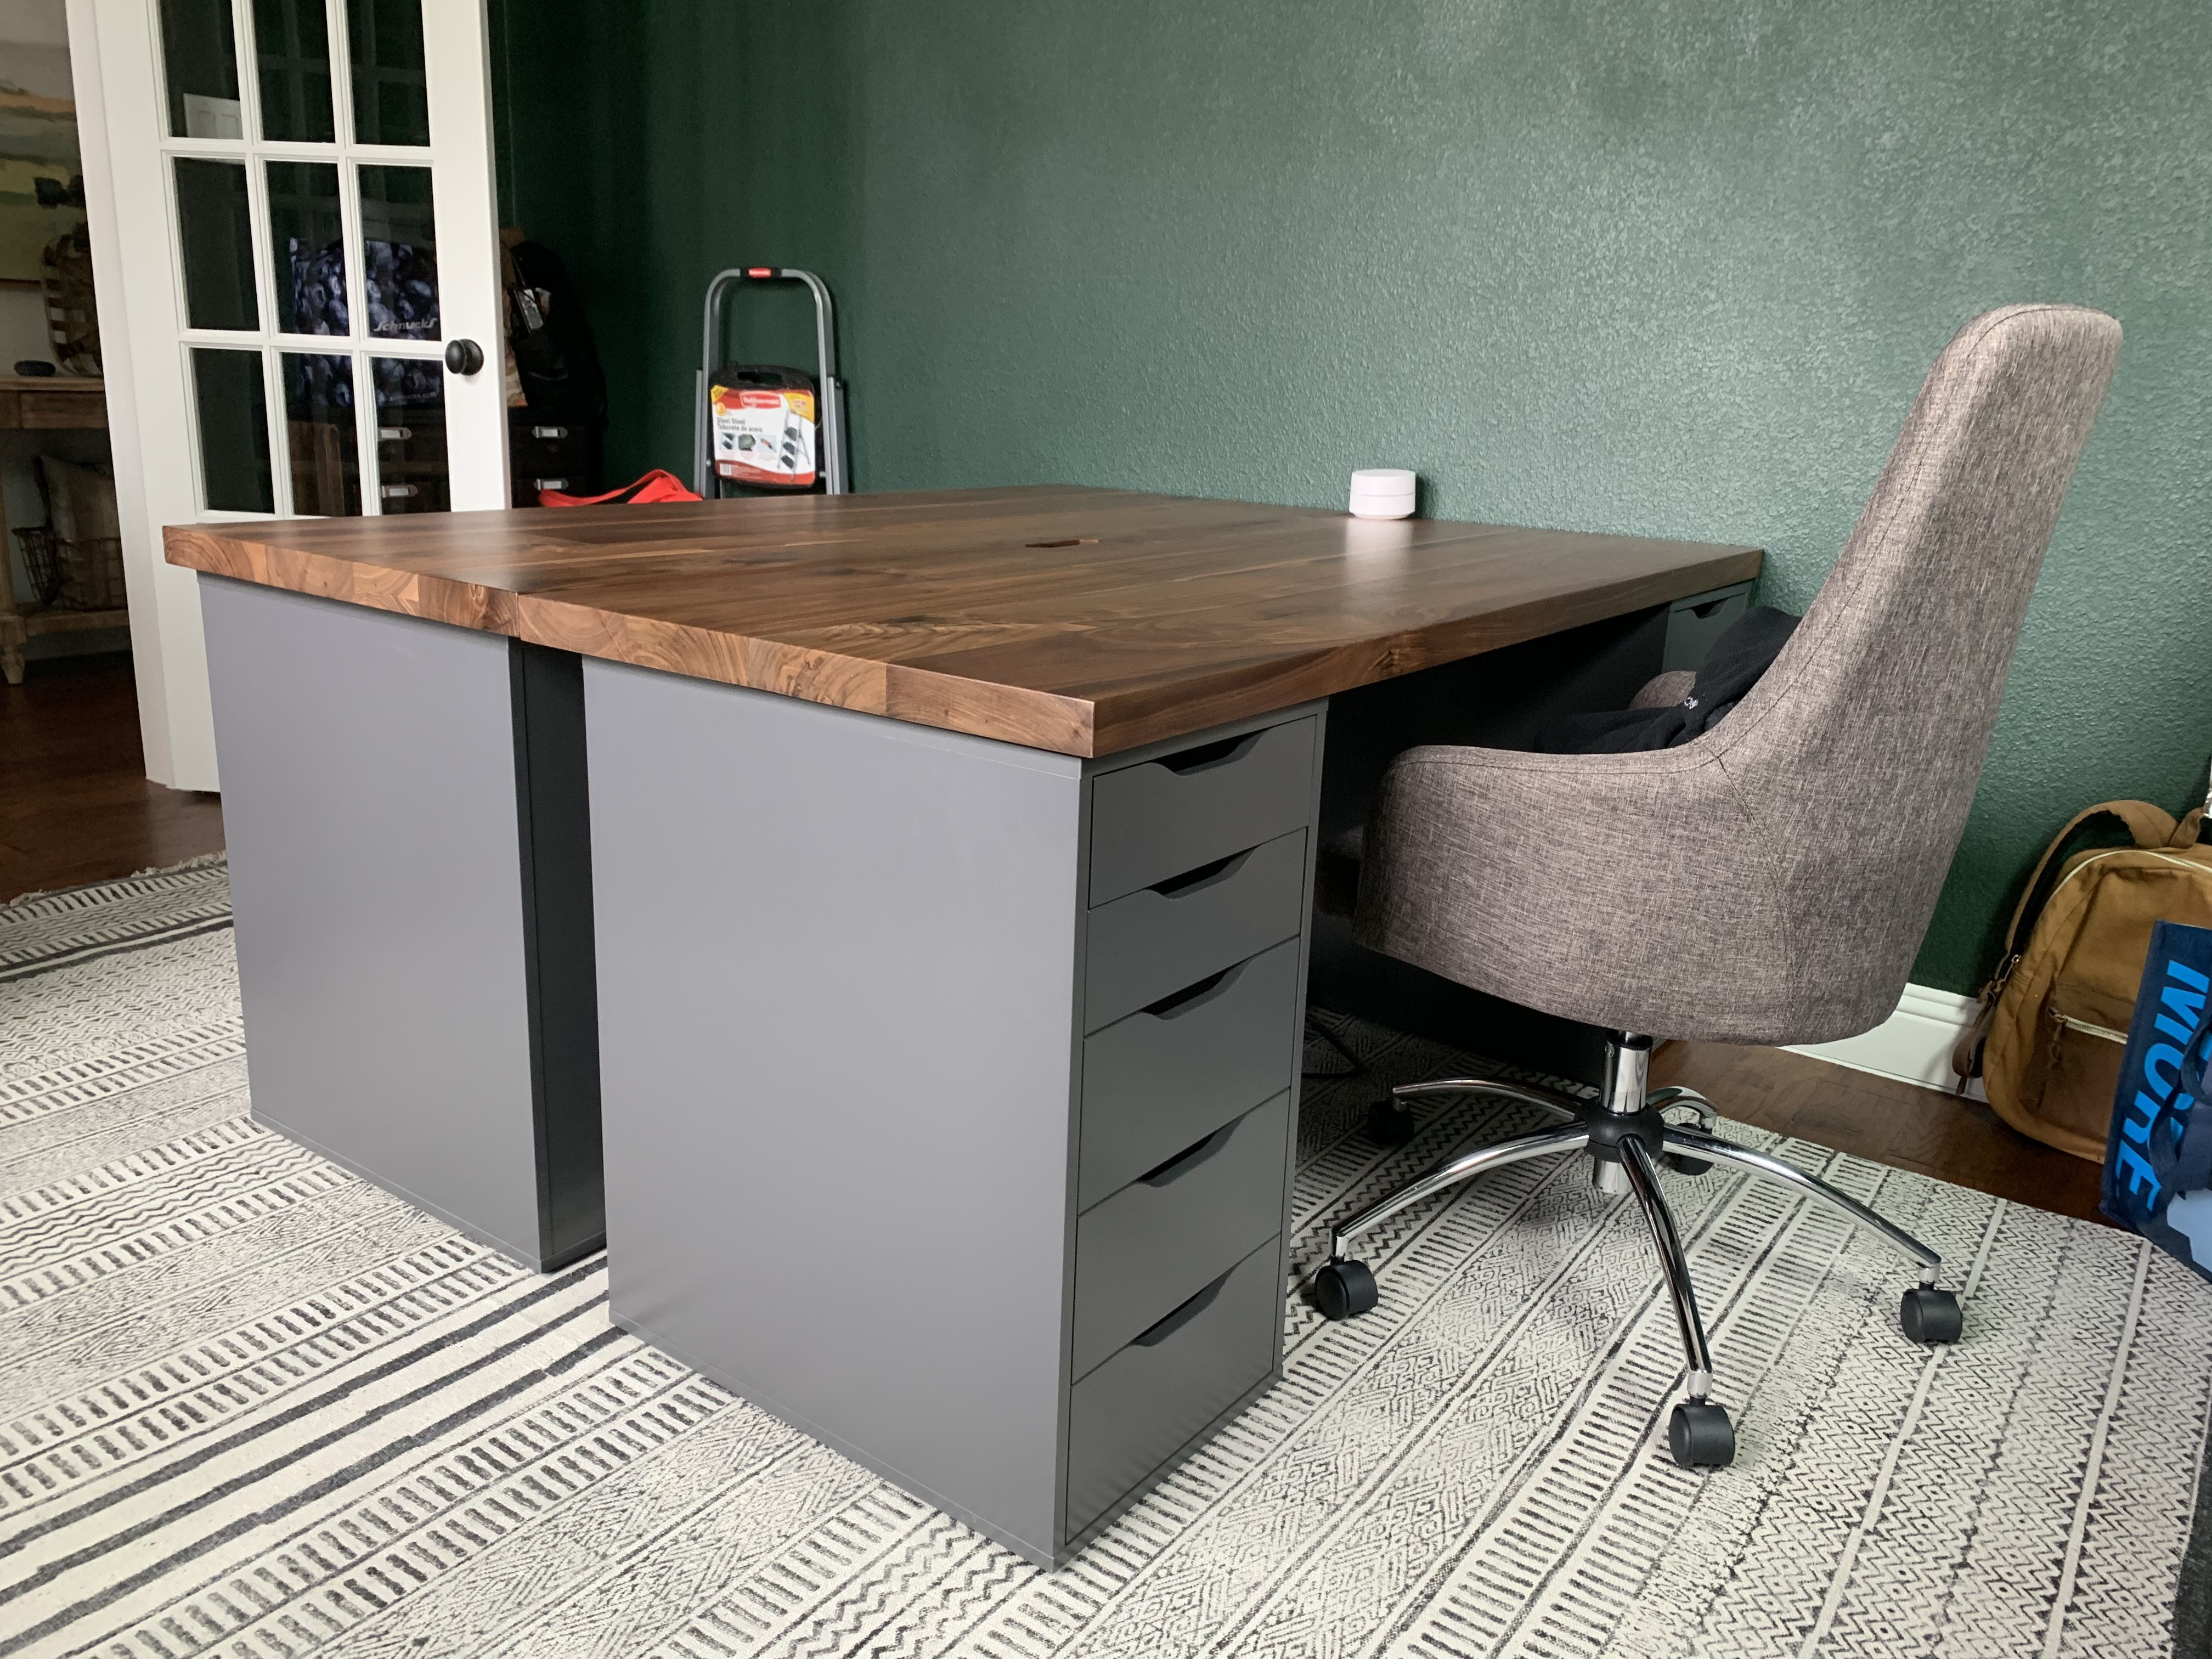 Handmade Walnut Top Desk With Storage Drawers by HH Co Design